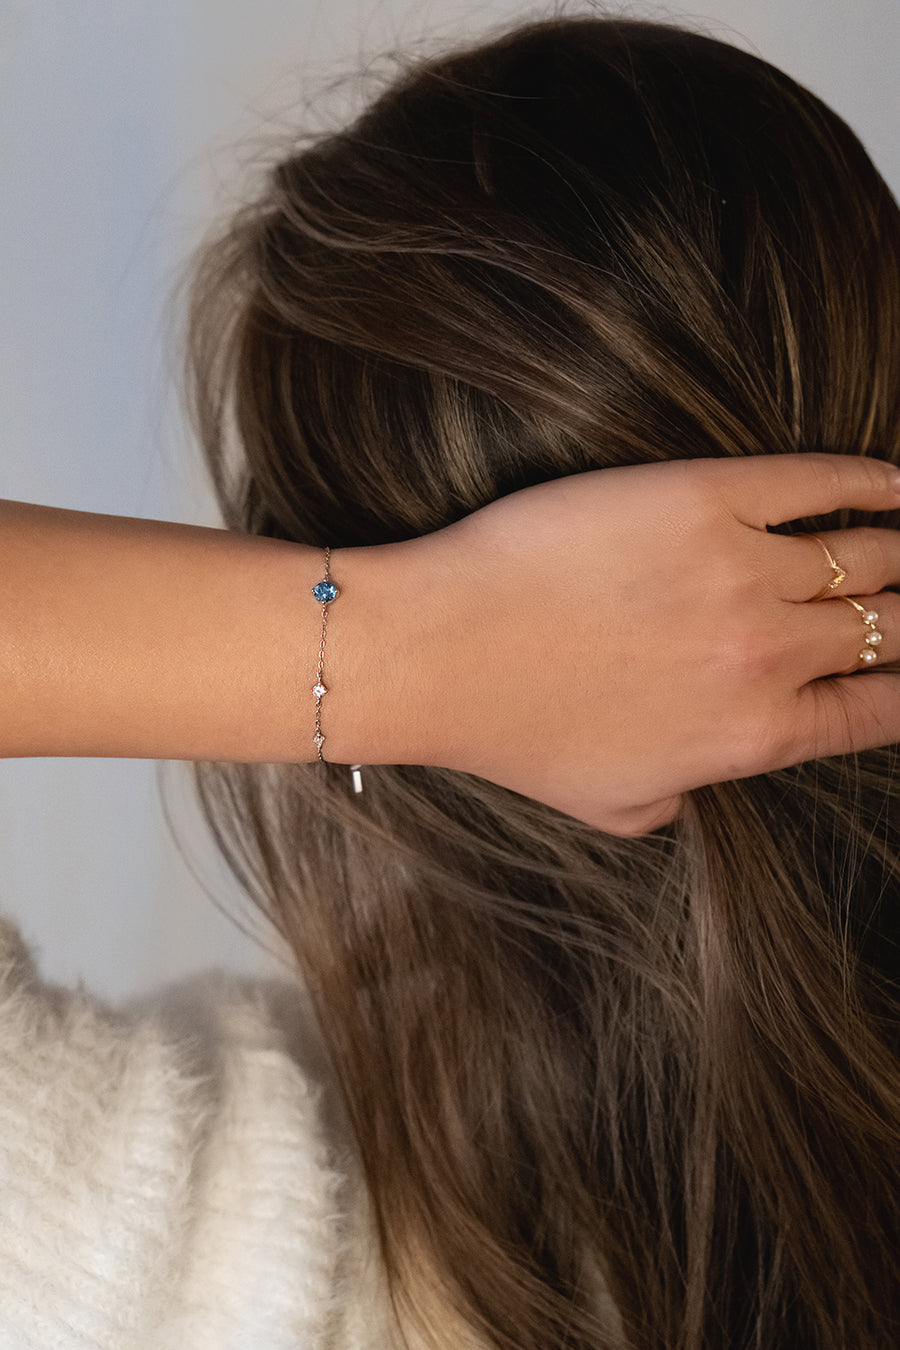 The Meta Sterling Silver Bracelet